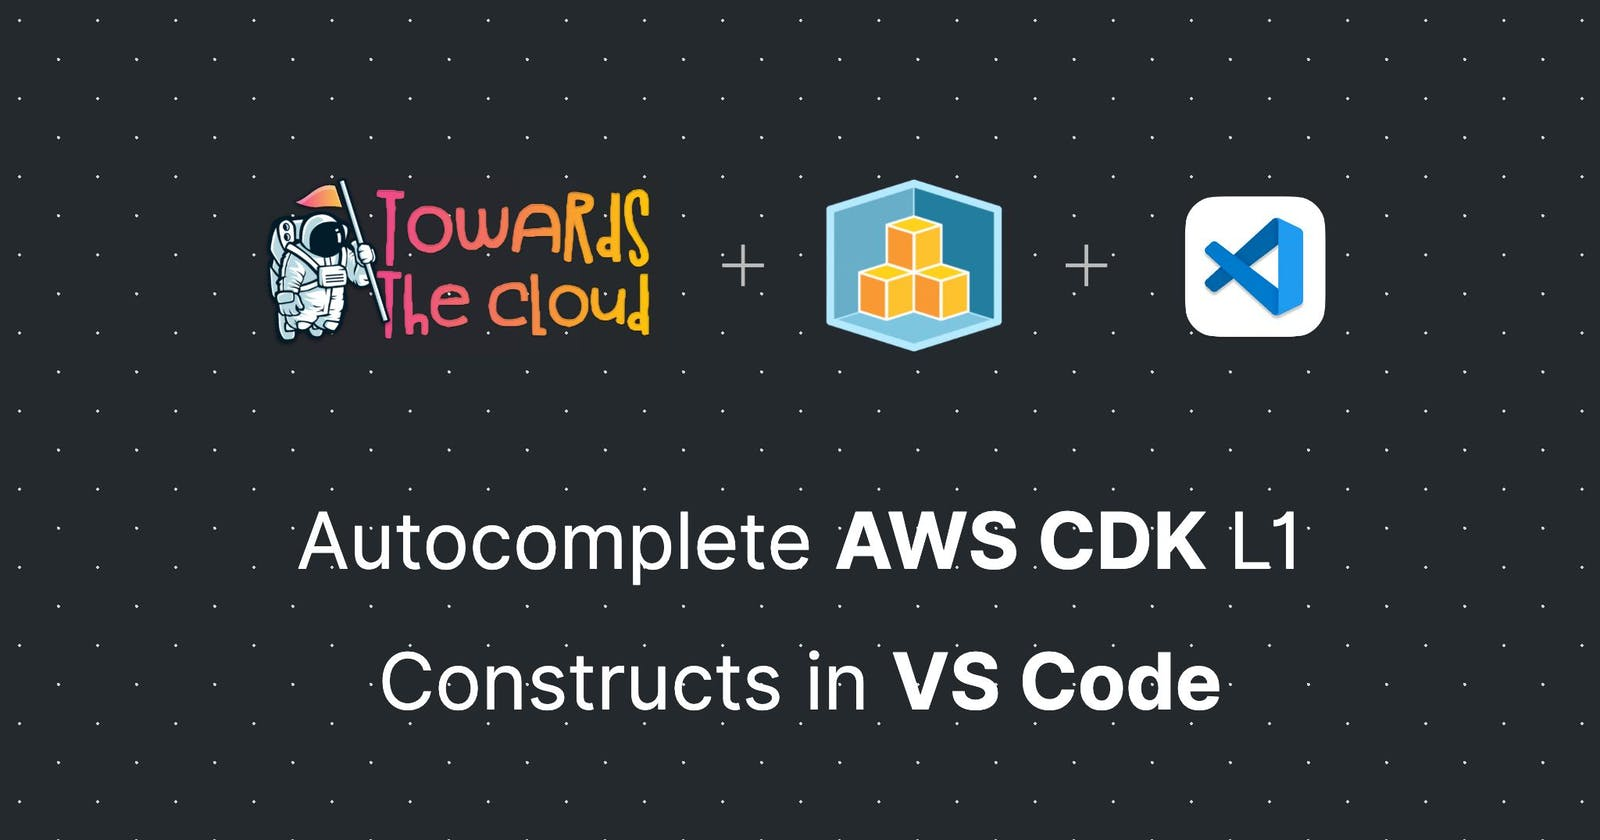 Autocomplete AWS CDK L1 Constructs in VS Code